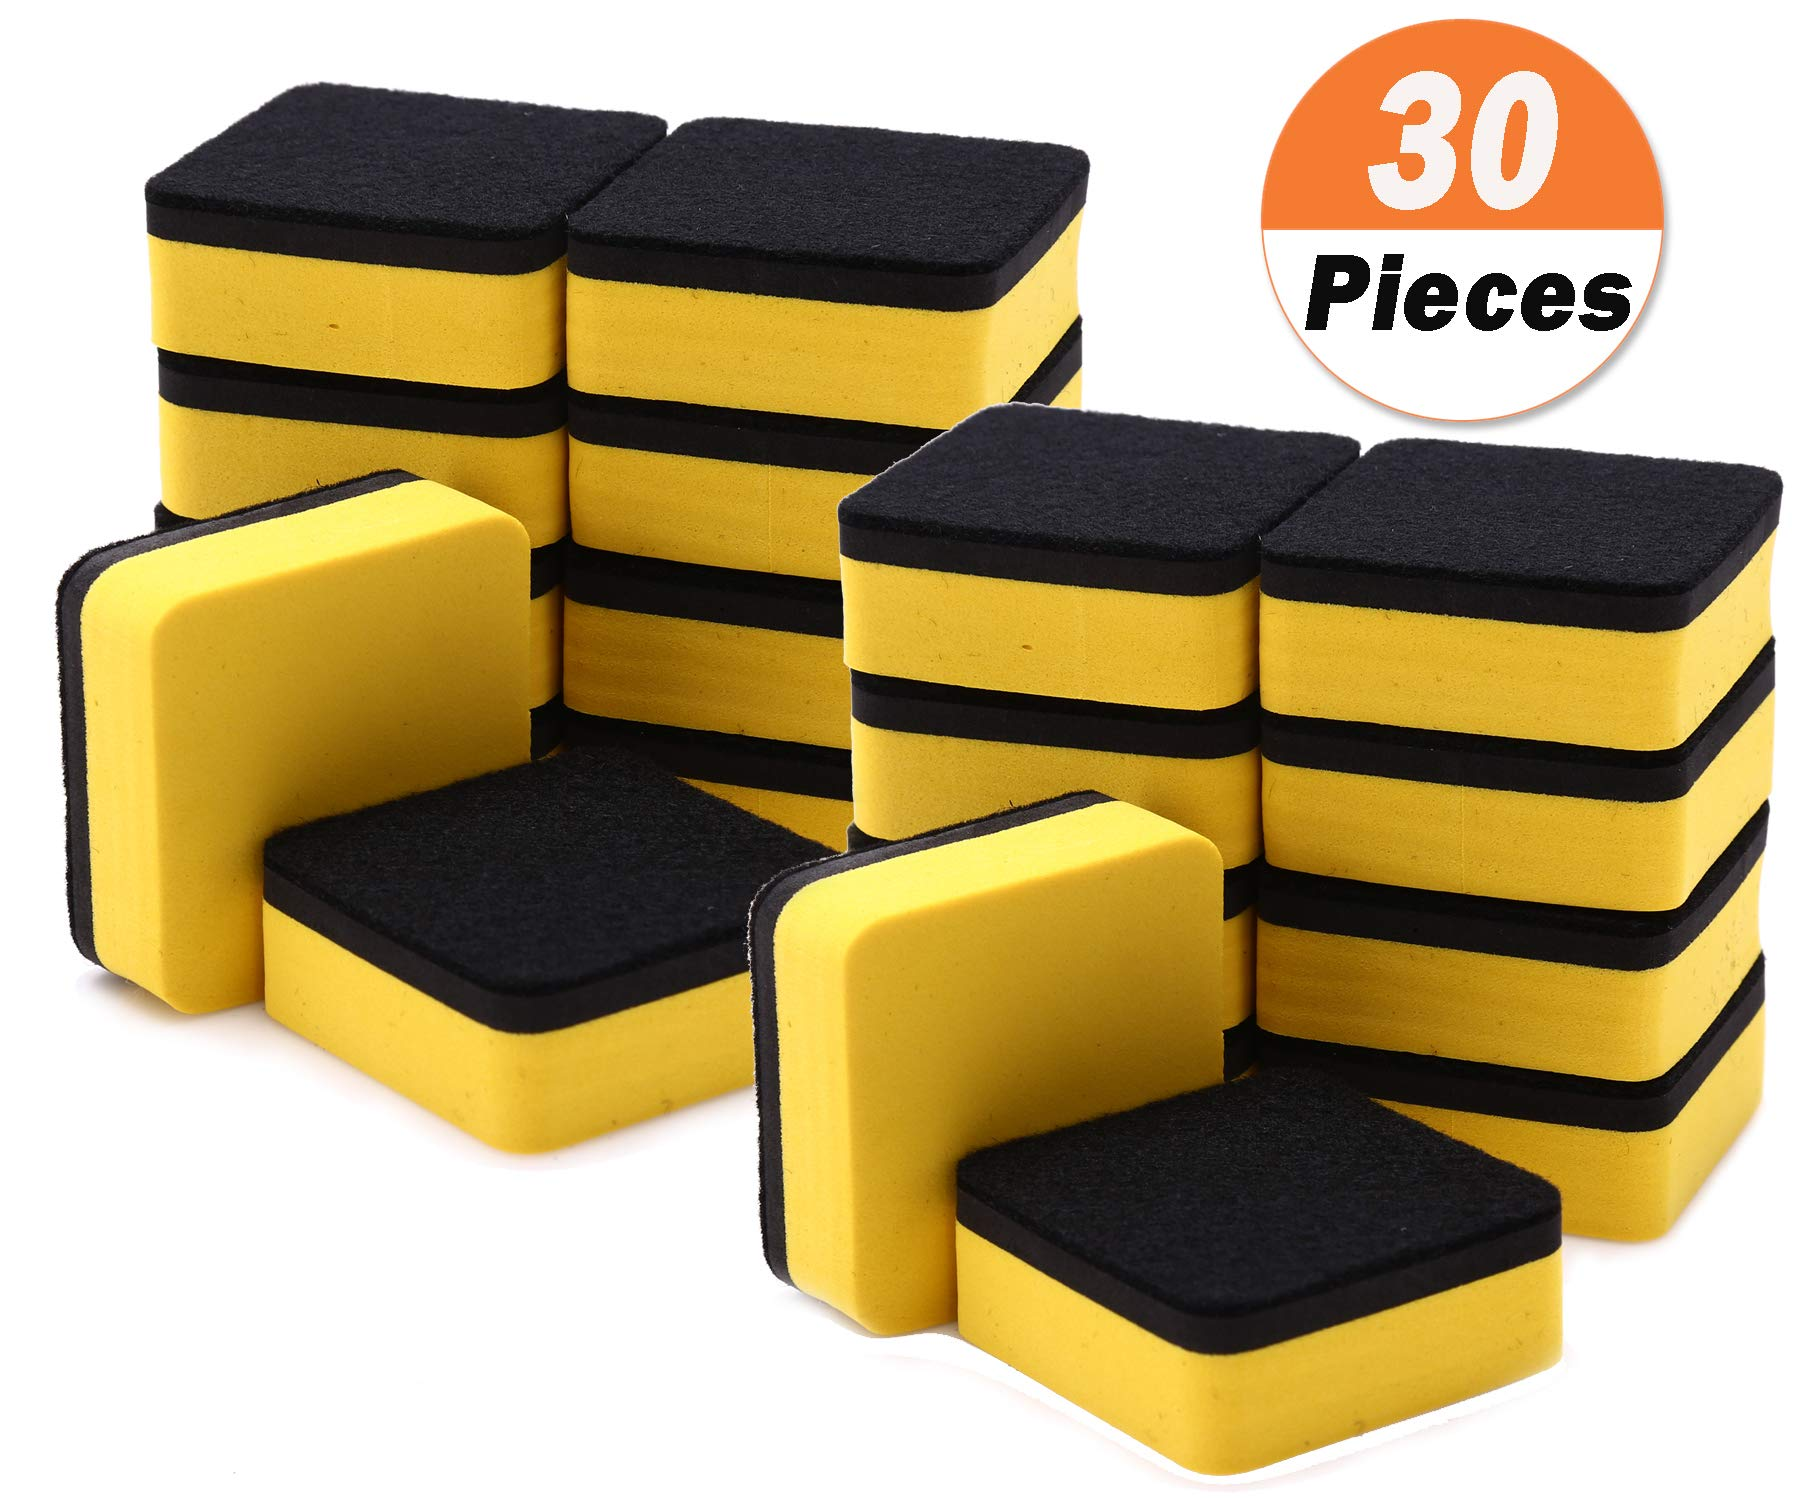 30 Pack Magnetic Whiteboard Eraser for School Classroom, Office, Home - Buytra Dry Erase Erasers Cleaner for Dry-erase White Board, 1.97 x 1.97'', Square Shape (Yellow)